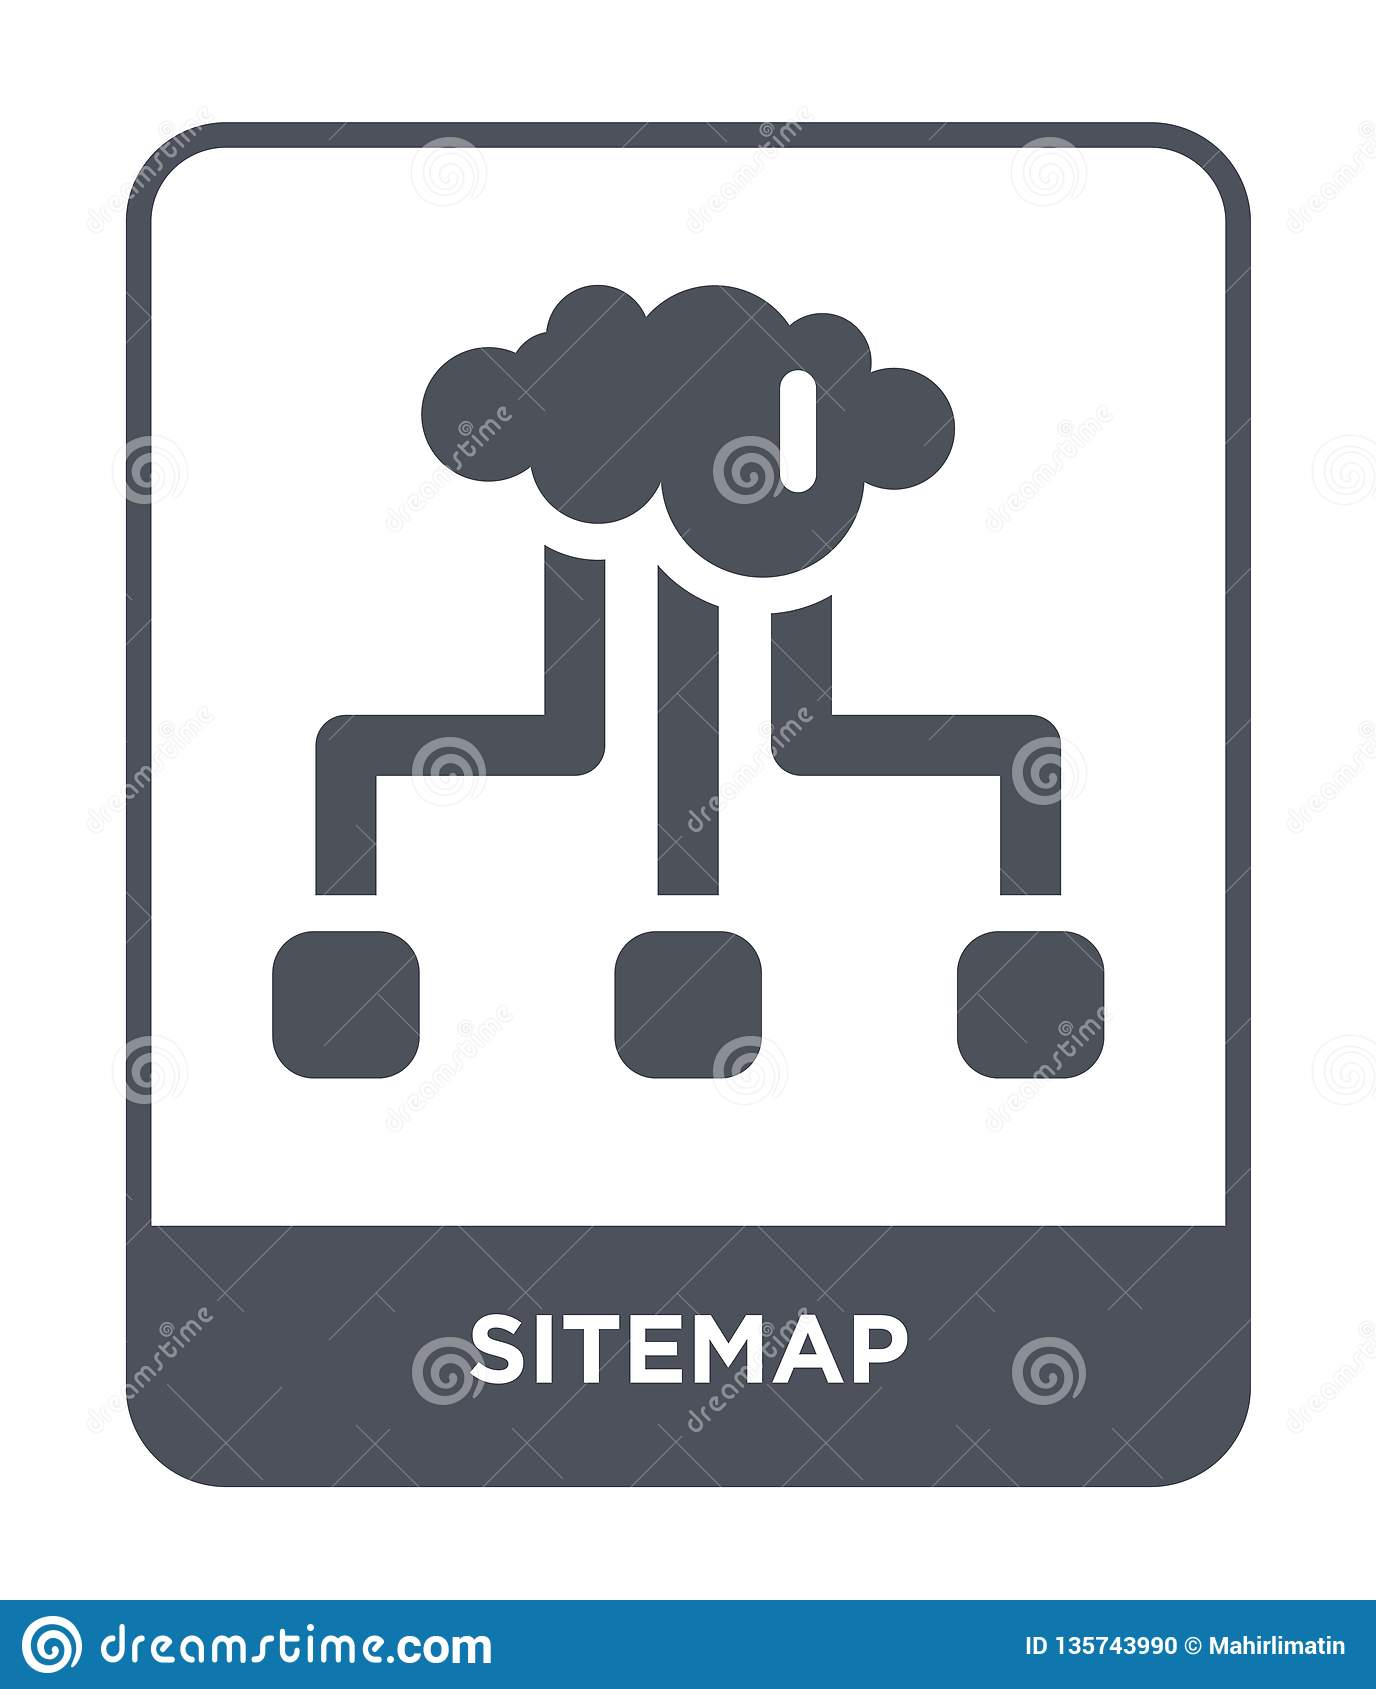 sitemap icon in trendy design style. sitemap icon isolated on white background. sitemap vector icon simple and modern flat symbol